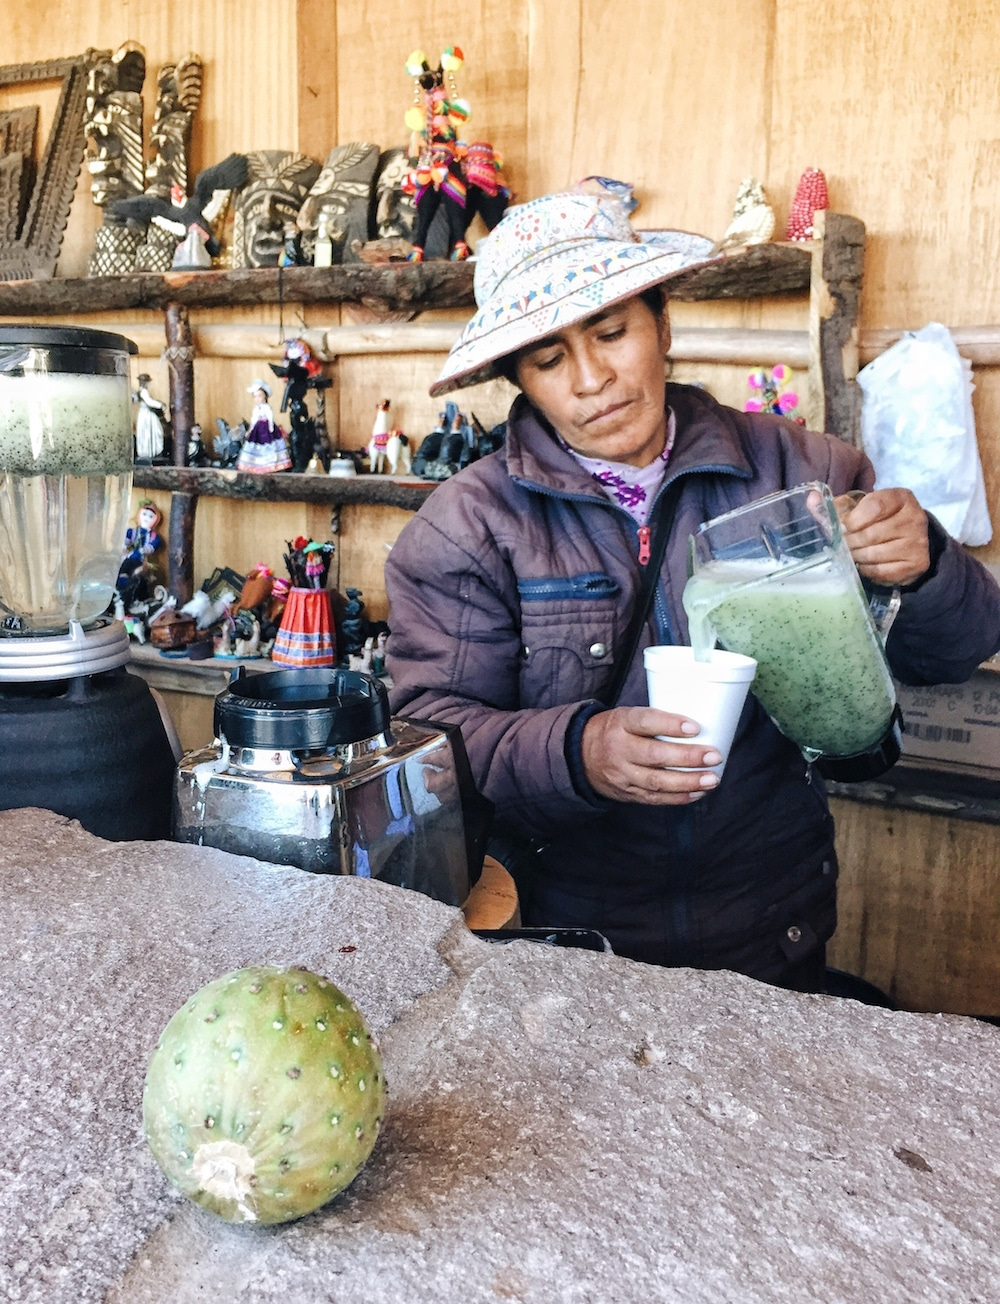 Colca sours in the Colca Valley